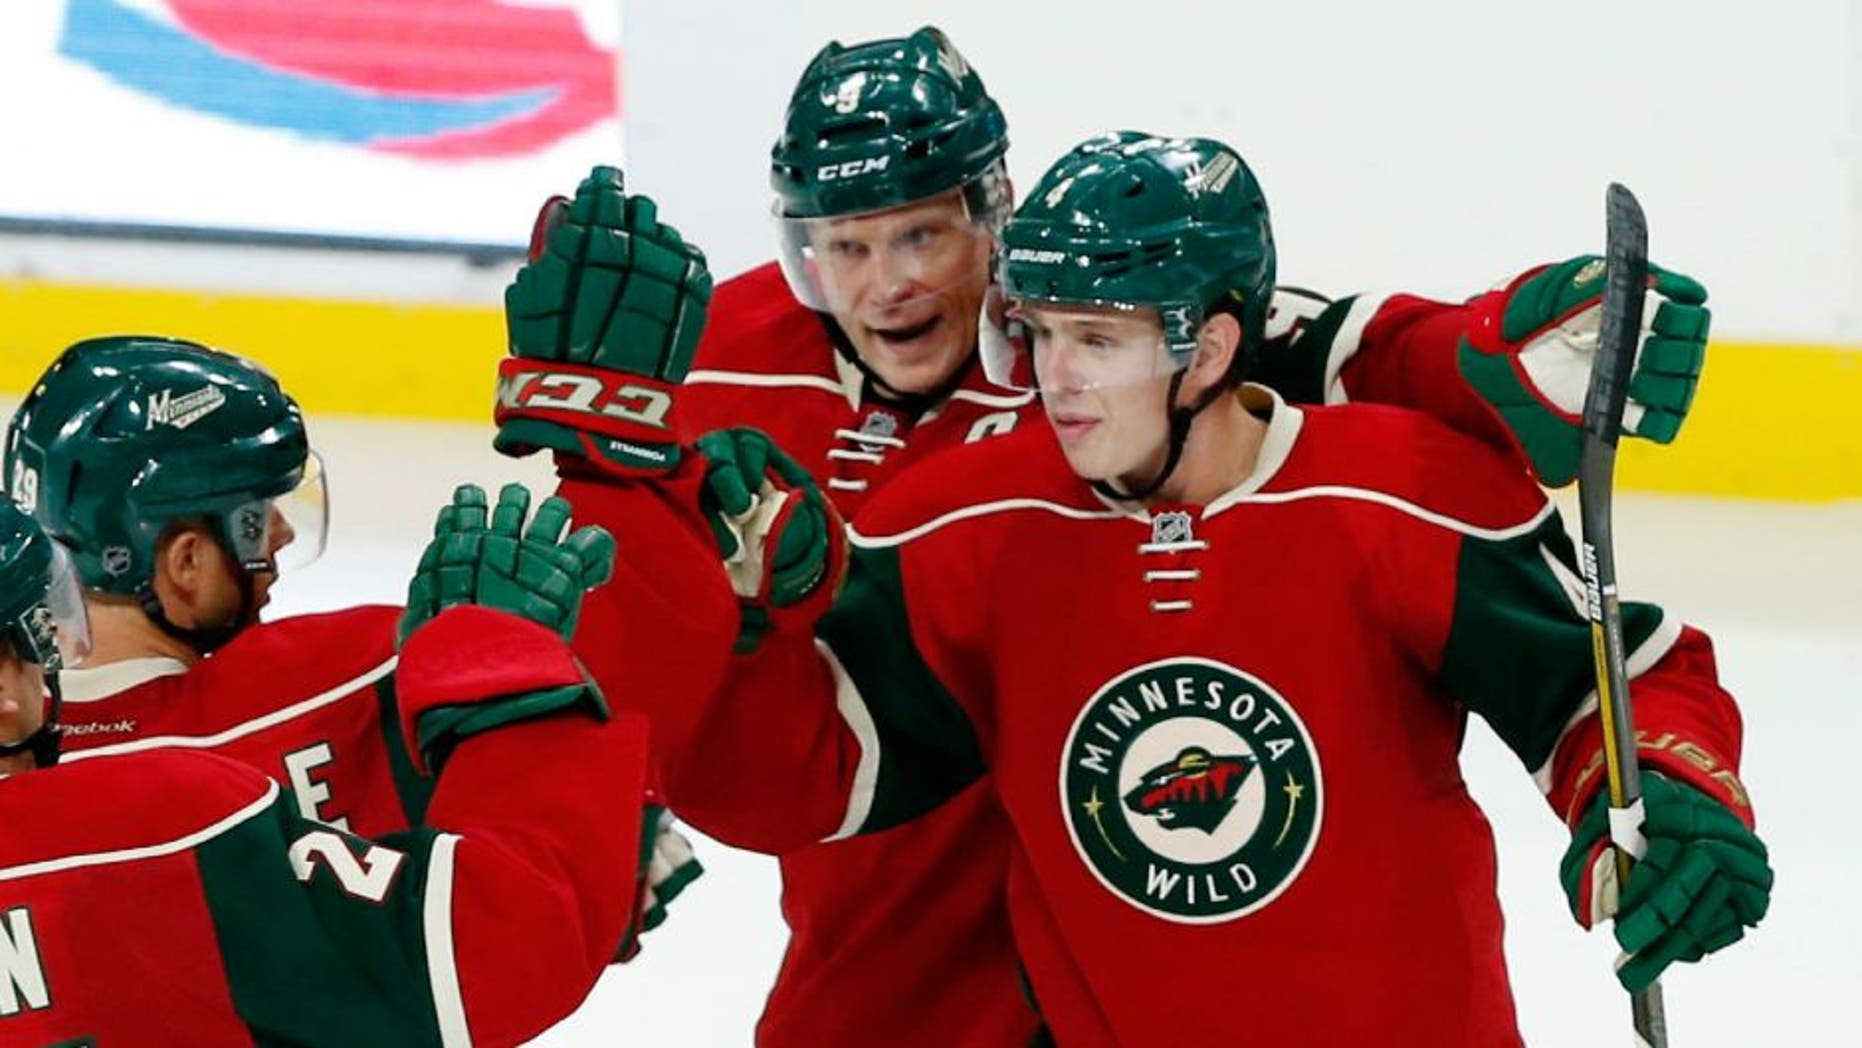 The Minnesota Wild's Mike Reilly, right, is congratulated by teammates after he scored the go-ahead goal in the third period off Winnipeg Jets goalie Michael Hutchinson.